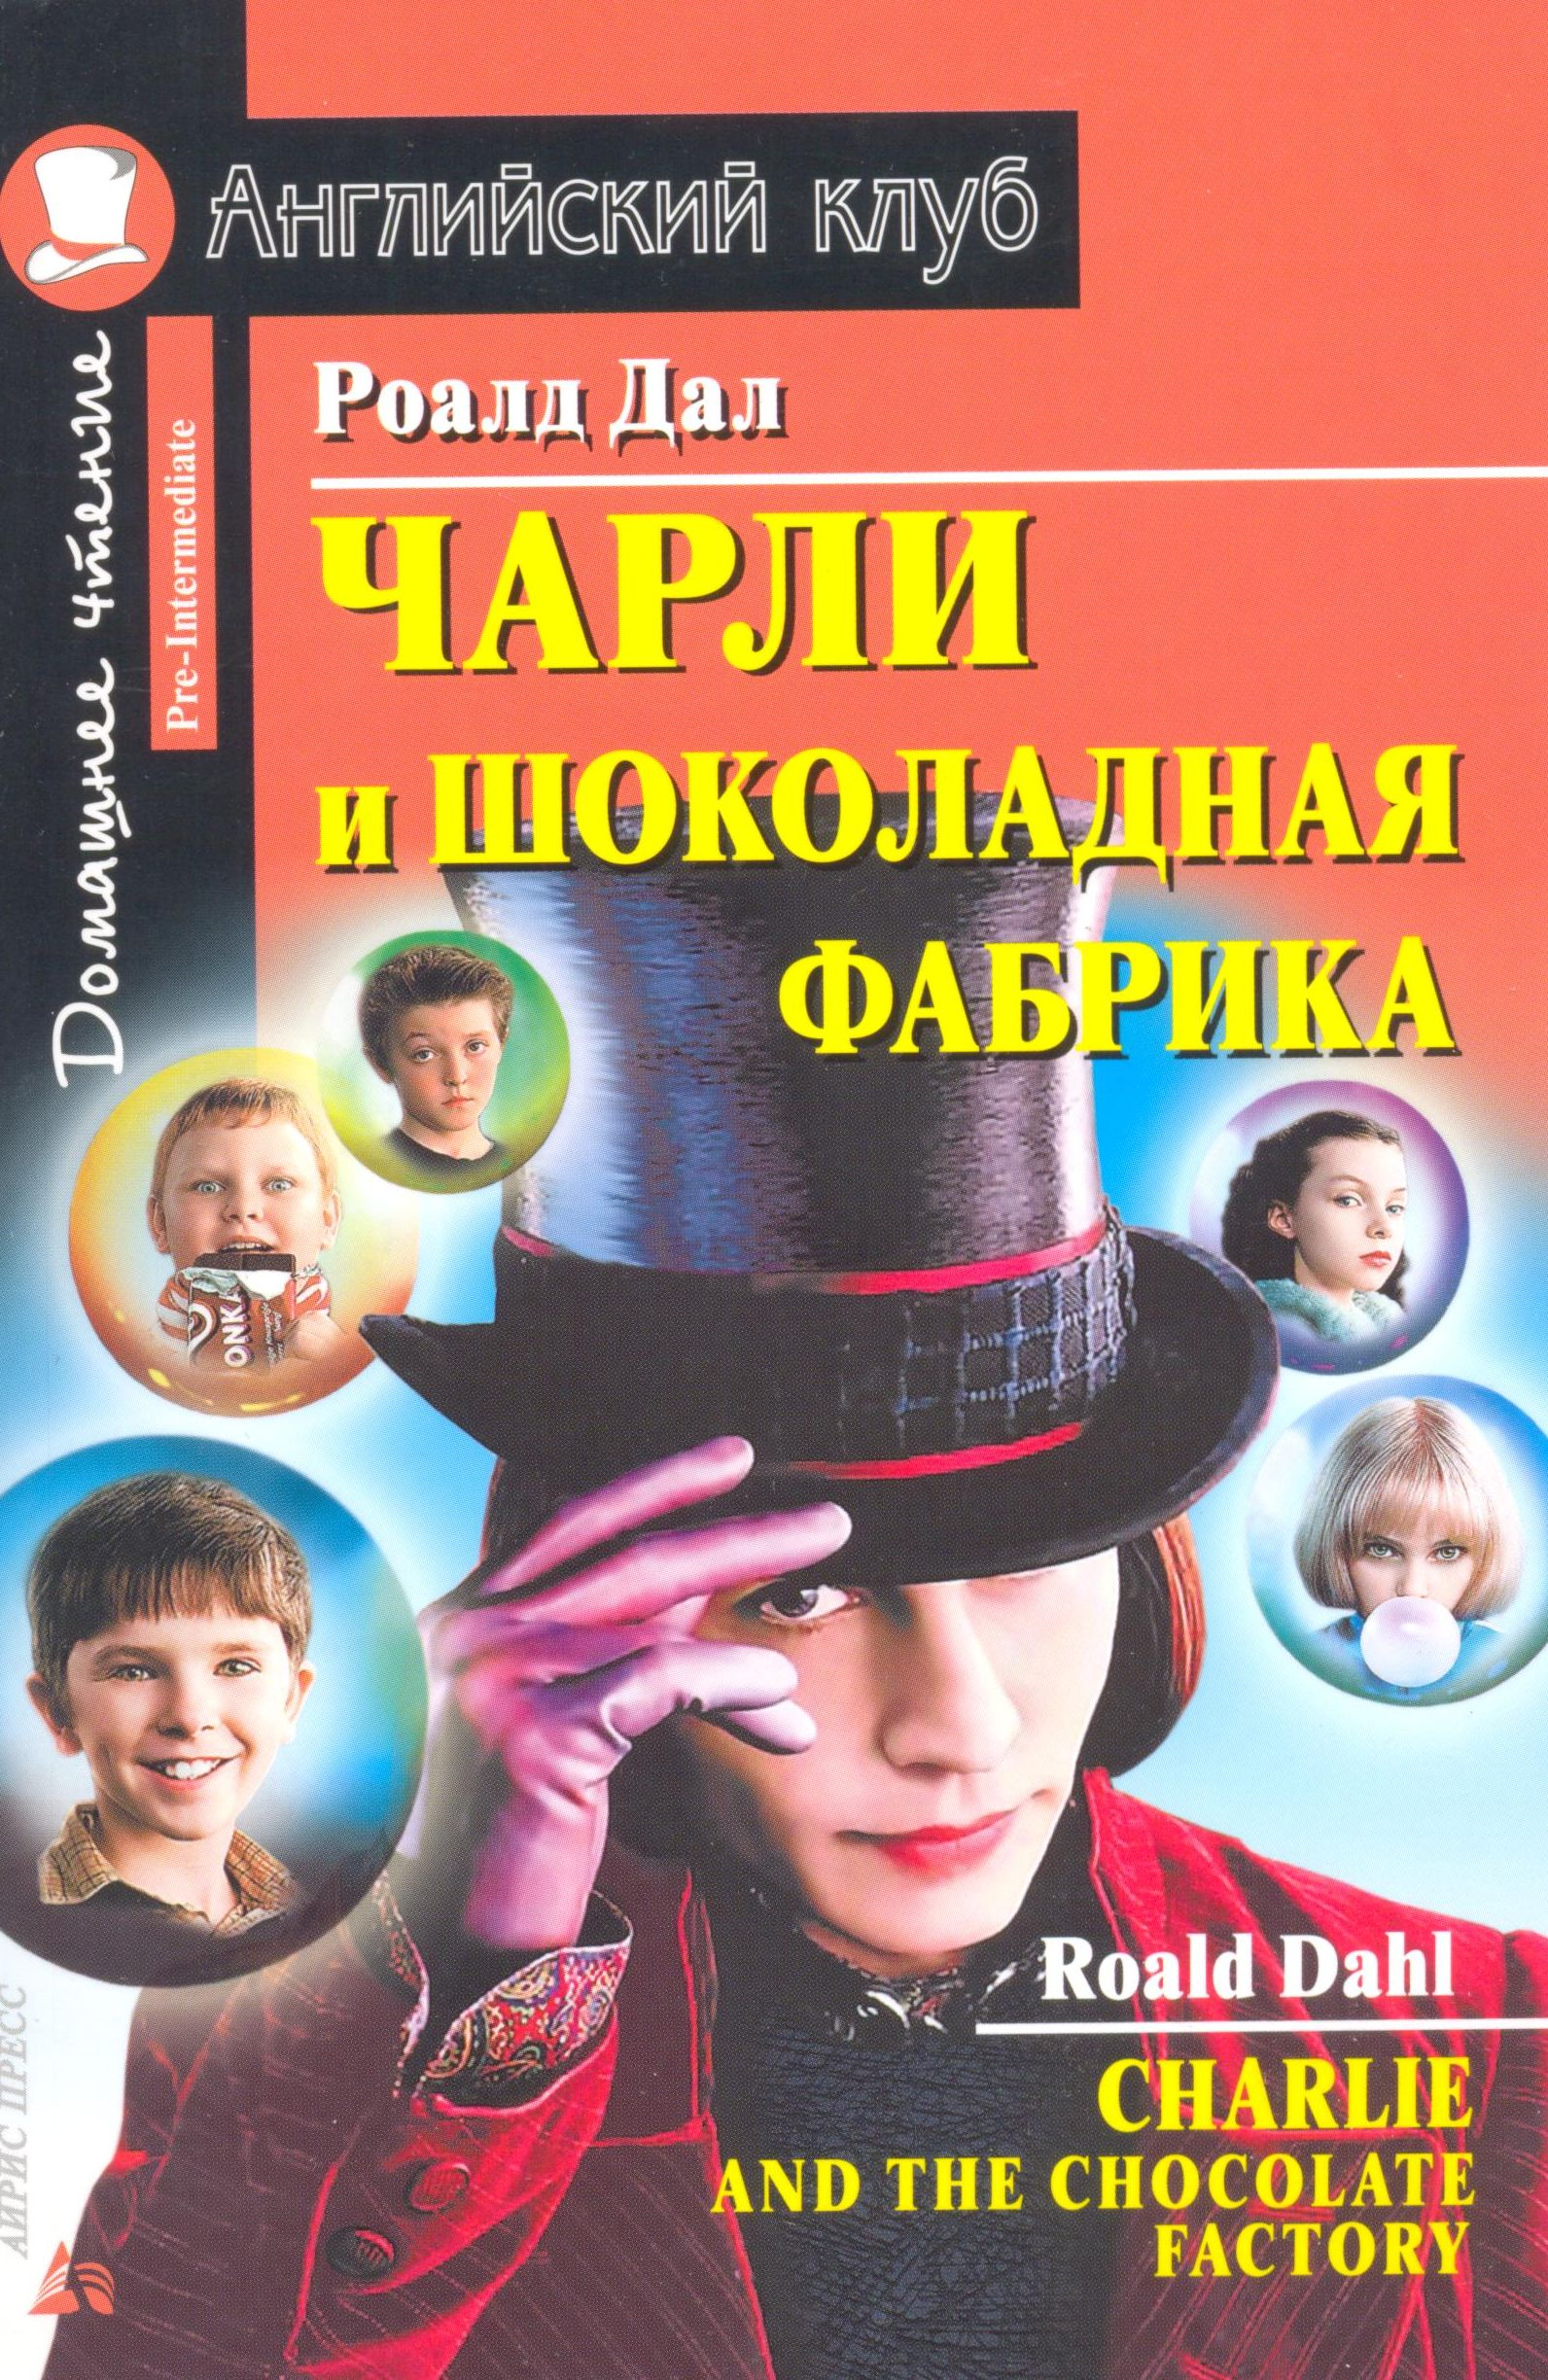 Чарли и шоколадная фабрика / Charlie and the Chocolate Factory